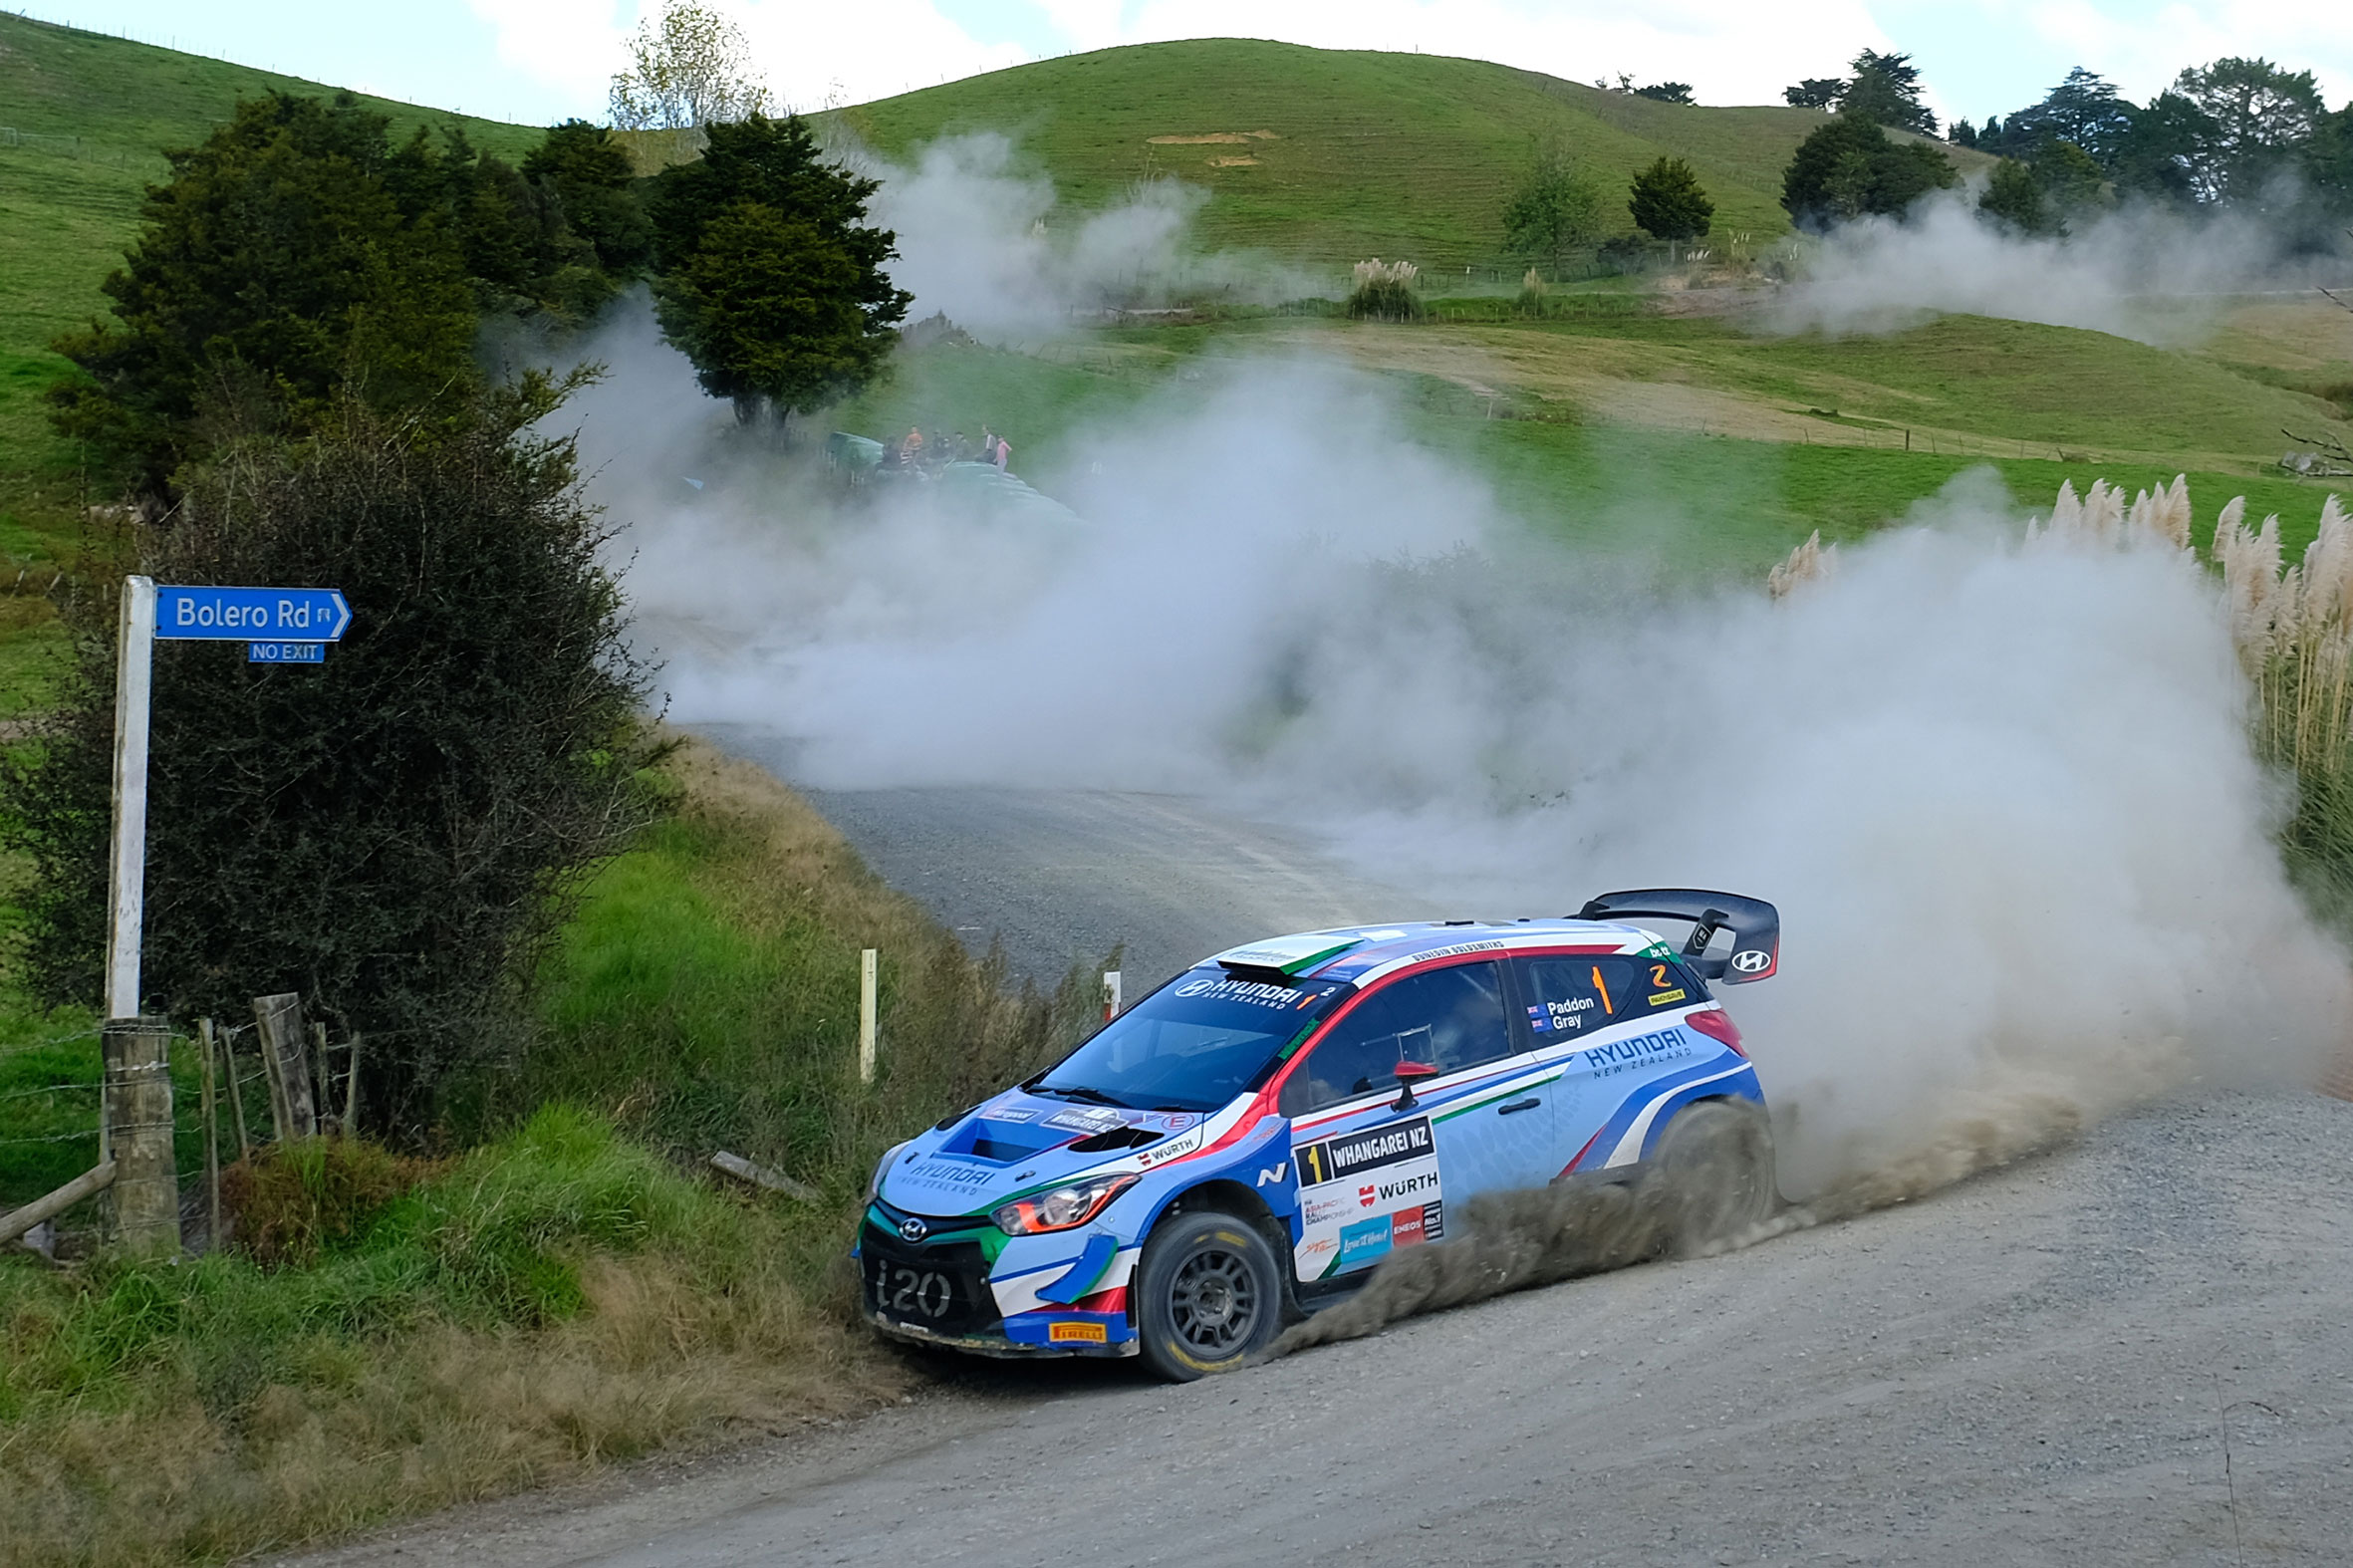 Paddon holds commanding rally lead at day's end